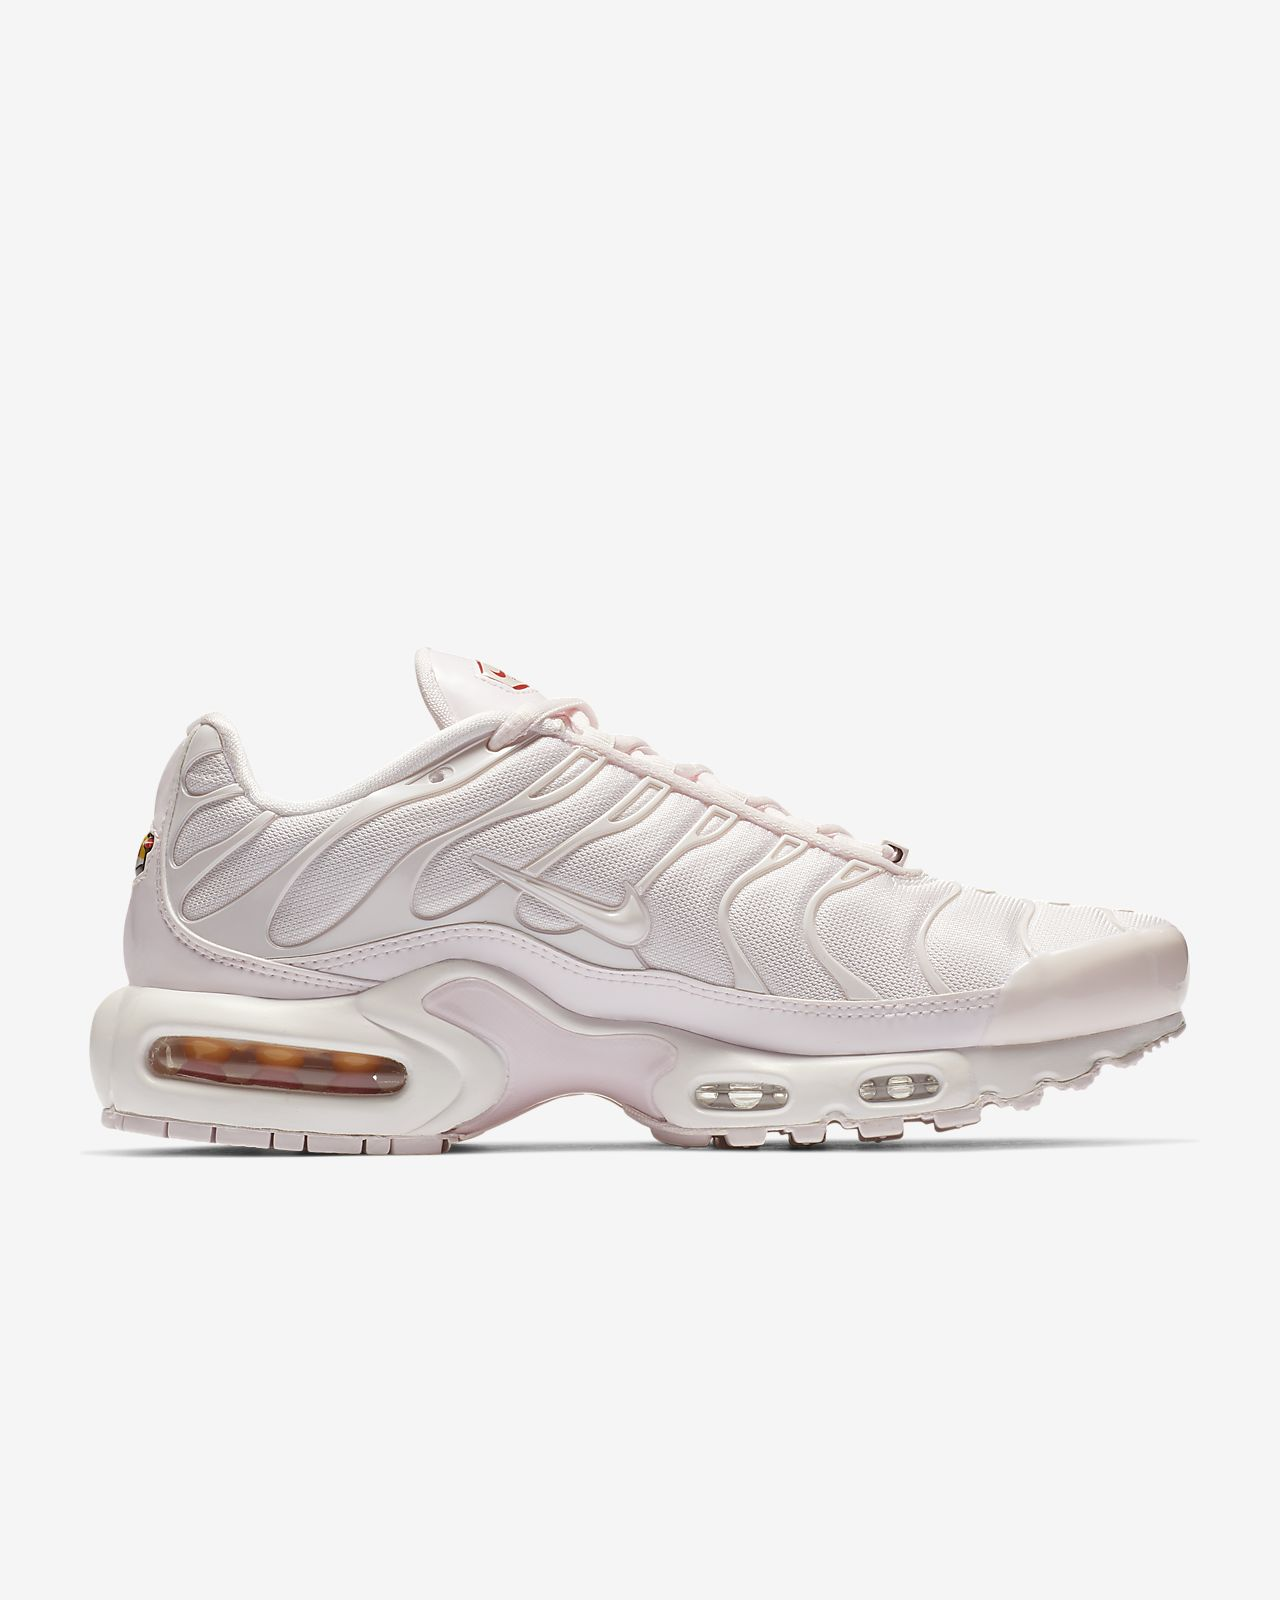 b0c584c2aef3f0 Nike Air Max Plus TN SE Women s Shoe. Nike.com ZA